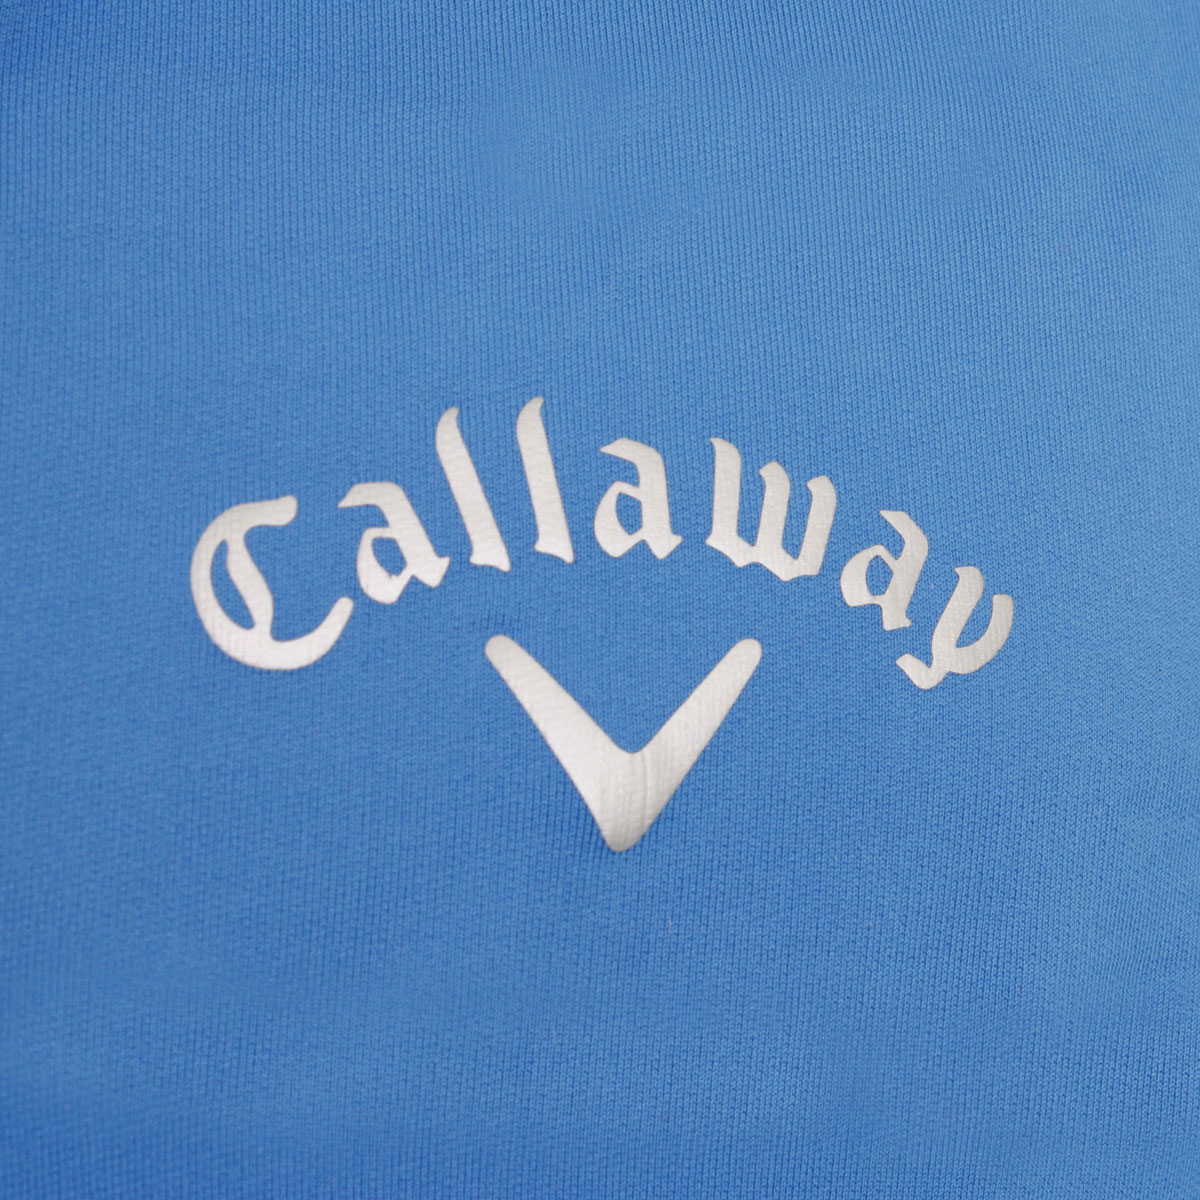 Callaway-Golf-Mens-1-4-Zip-Mid-Layer-Sweater-034-Tour-Logo-034-Pullover-Jumper thumbnail 12